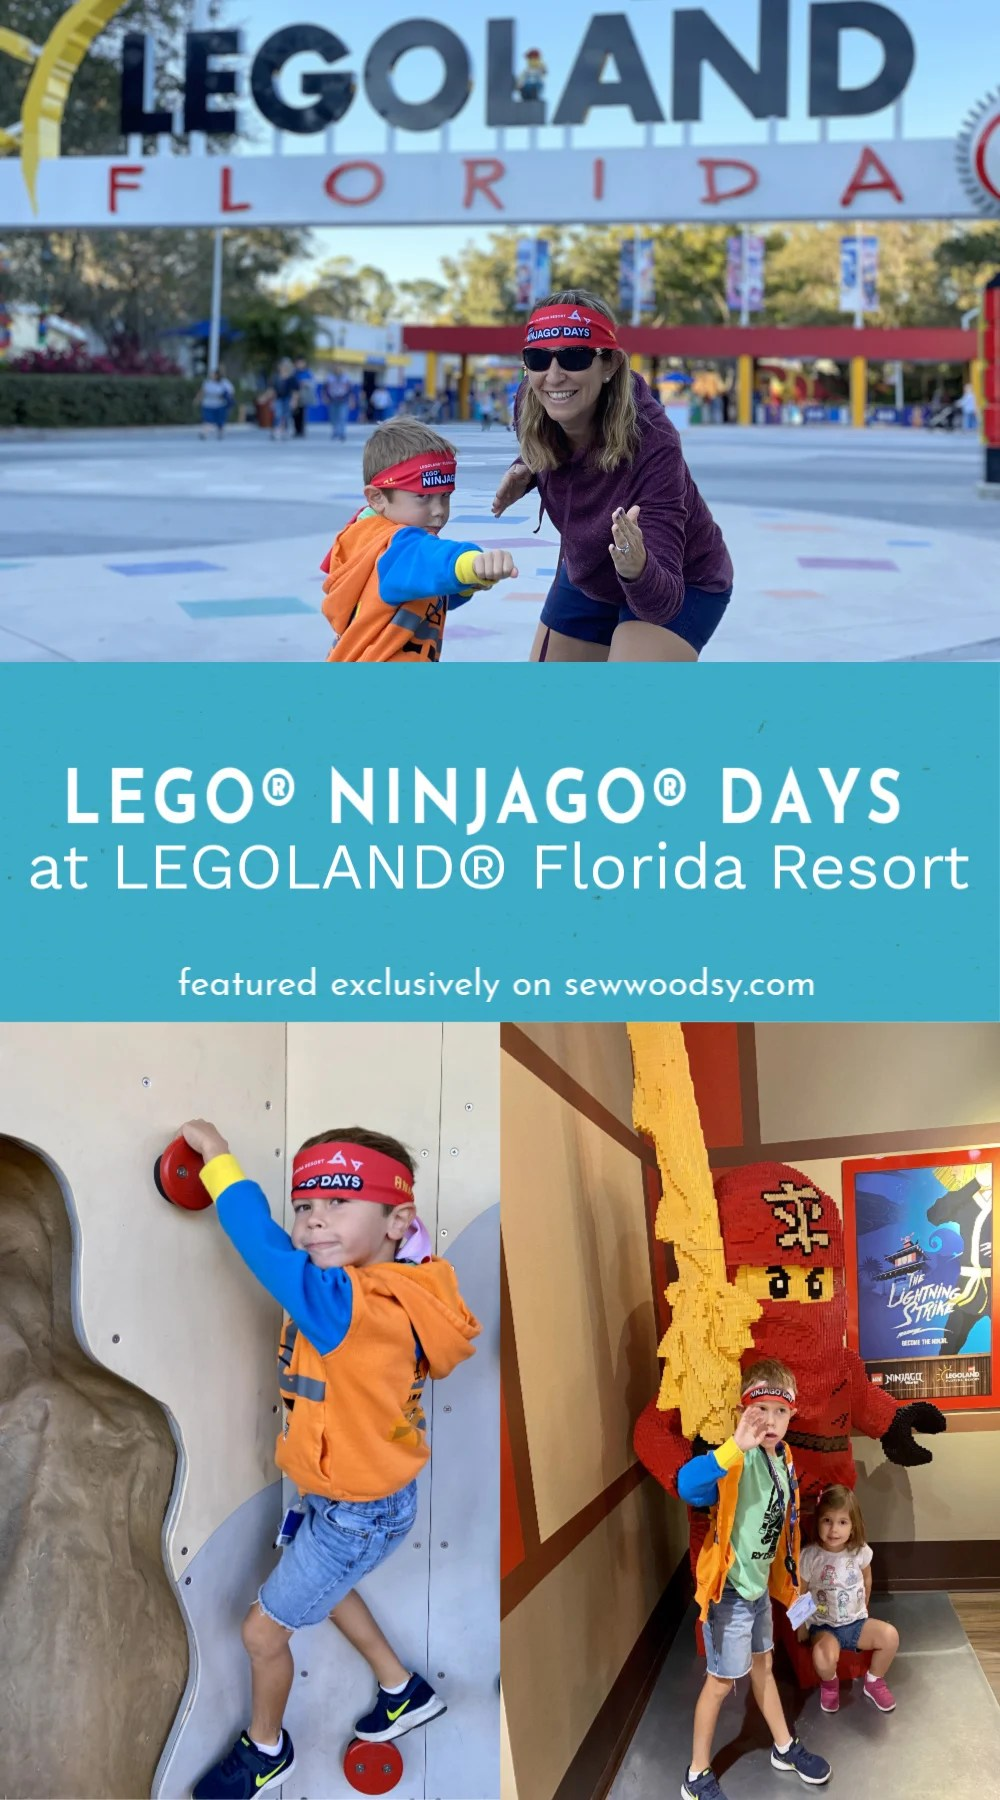 Collage of family fun activities during LEGO® NINJAGO® Days at LEGOLAND® Florida Resort